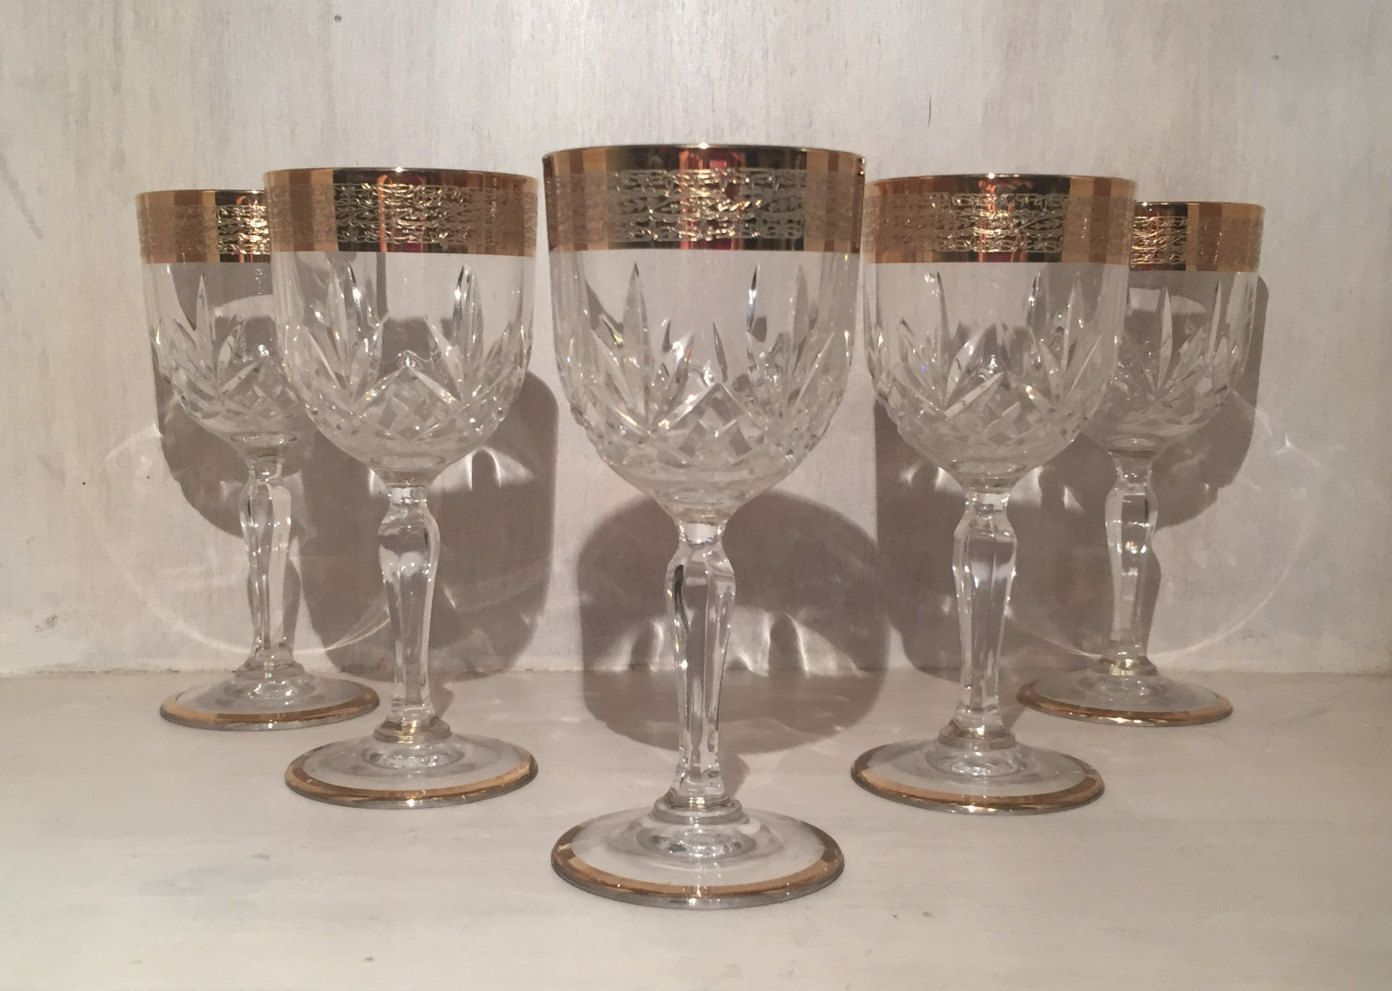 Large Crystal Wine Glasses Crystal Wine Glasses With 24kt Gold Patterned Rim Set Of 5